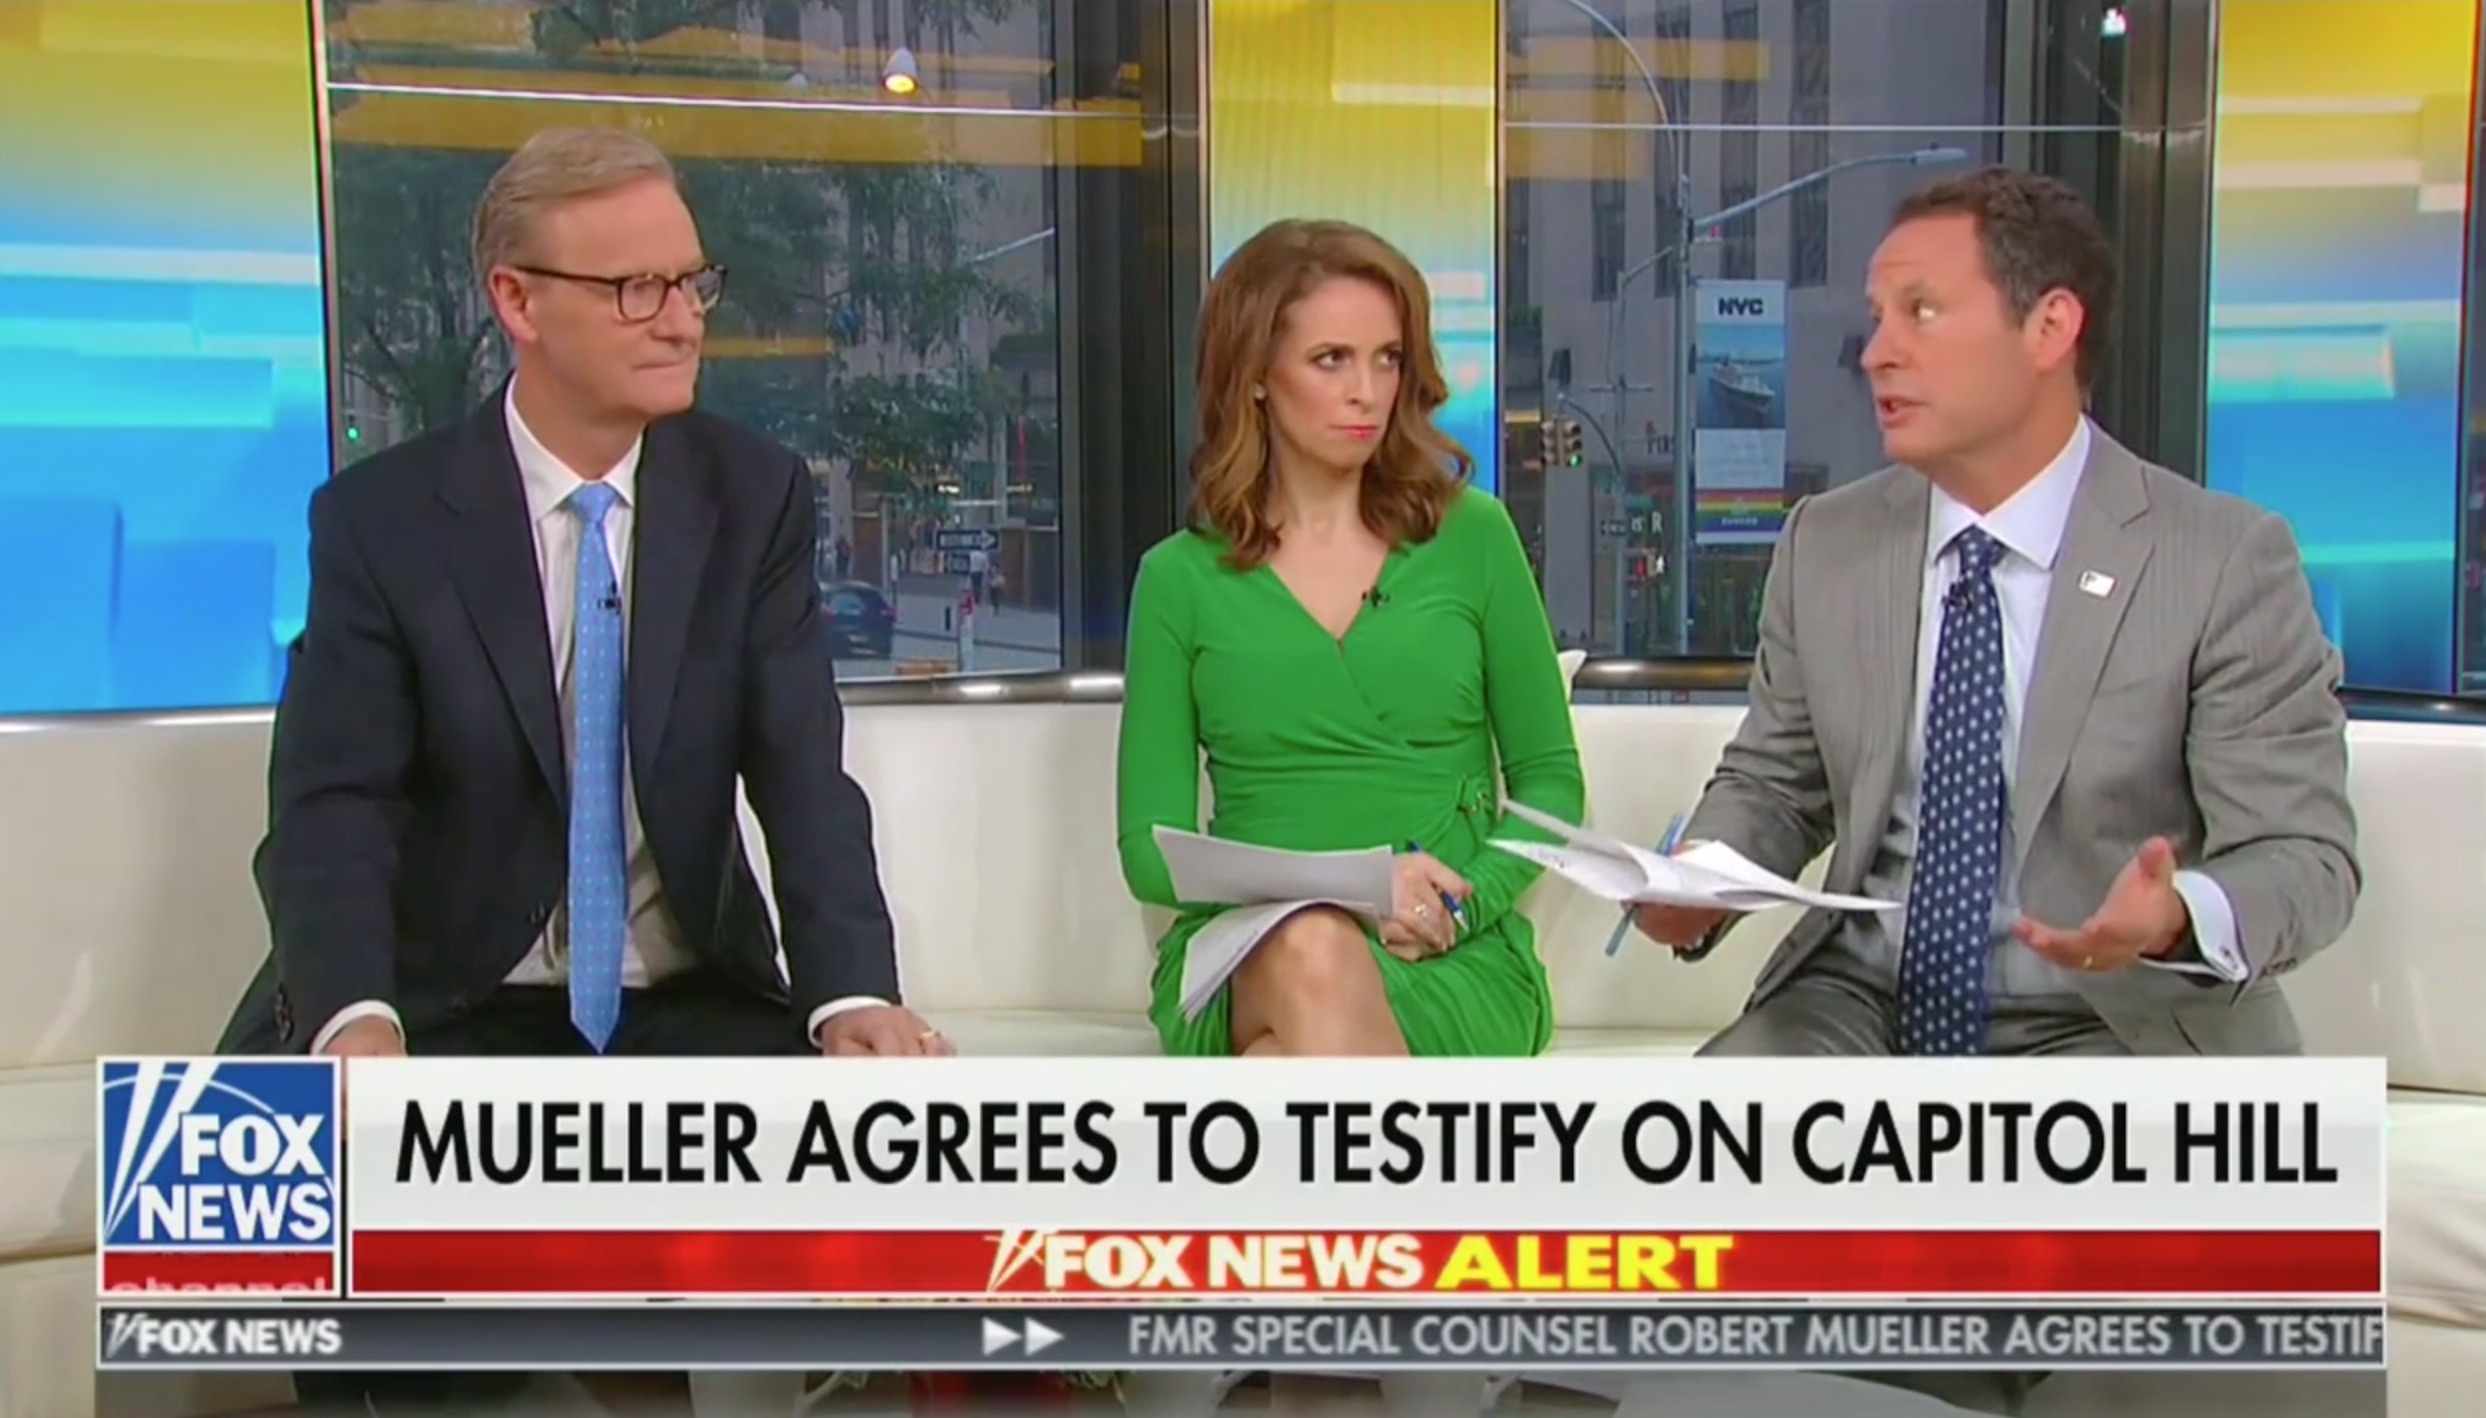 Brian Kilmeade: I Don't Think Robert Mueller Knows the Details of the Mueller Report